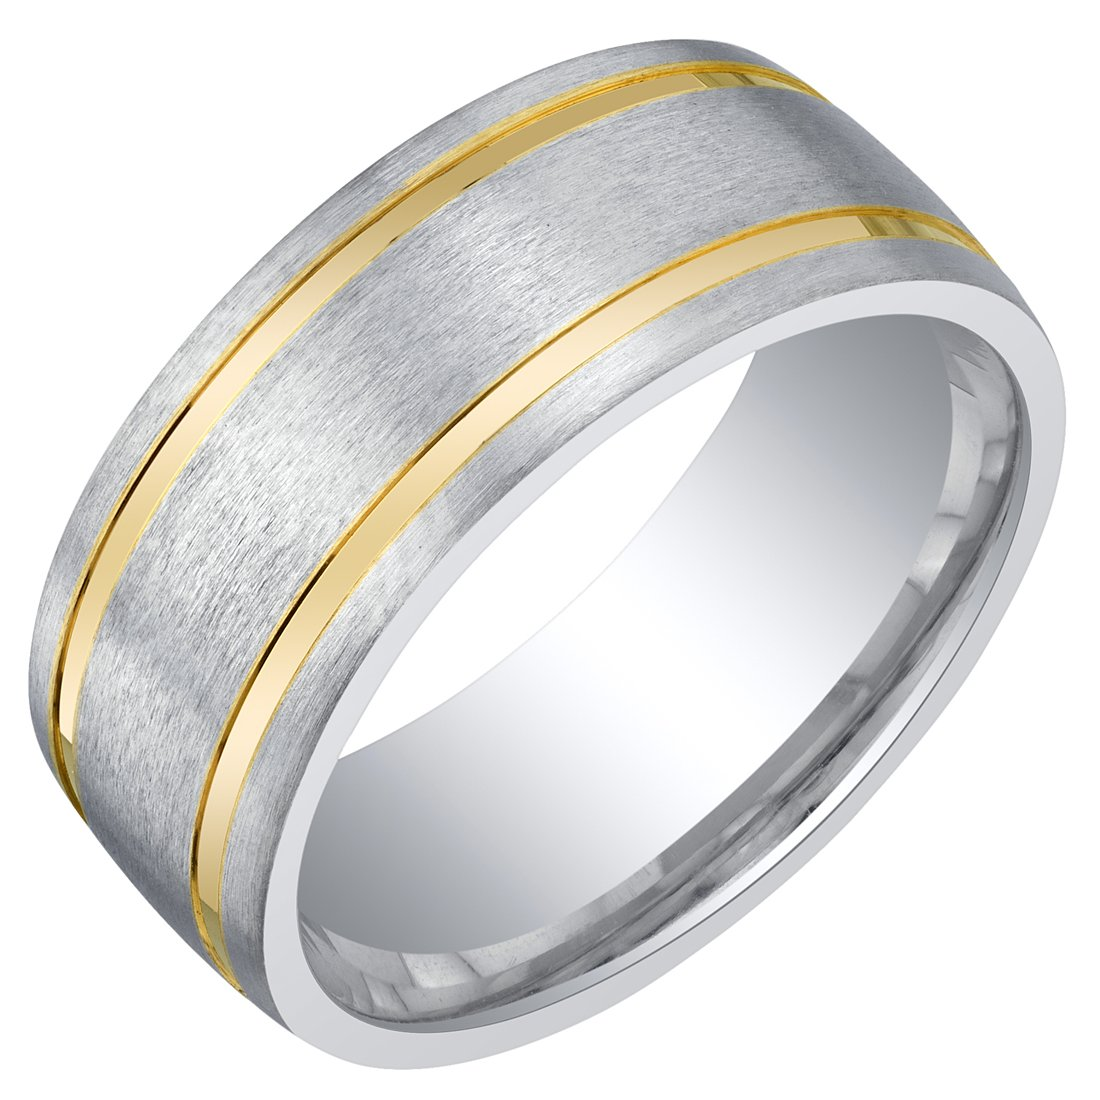 Mens Two-Tone Sterling Silver Wedding Ring Band in Brushed Matte 8mm Comfort Fit Size 11.5